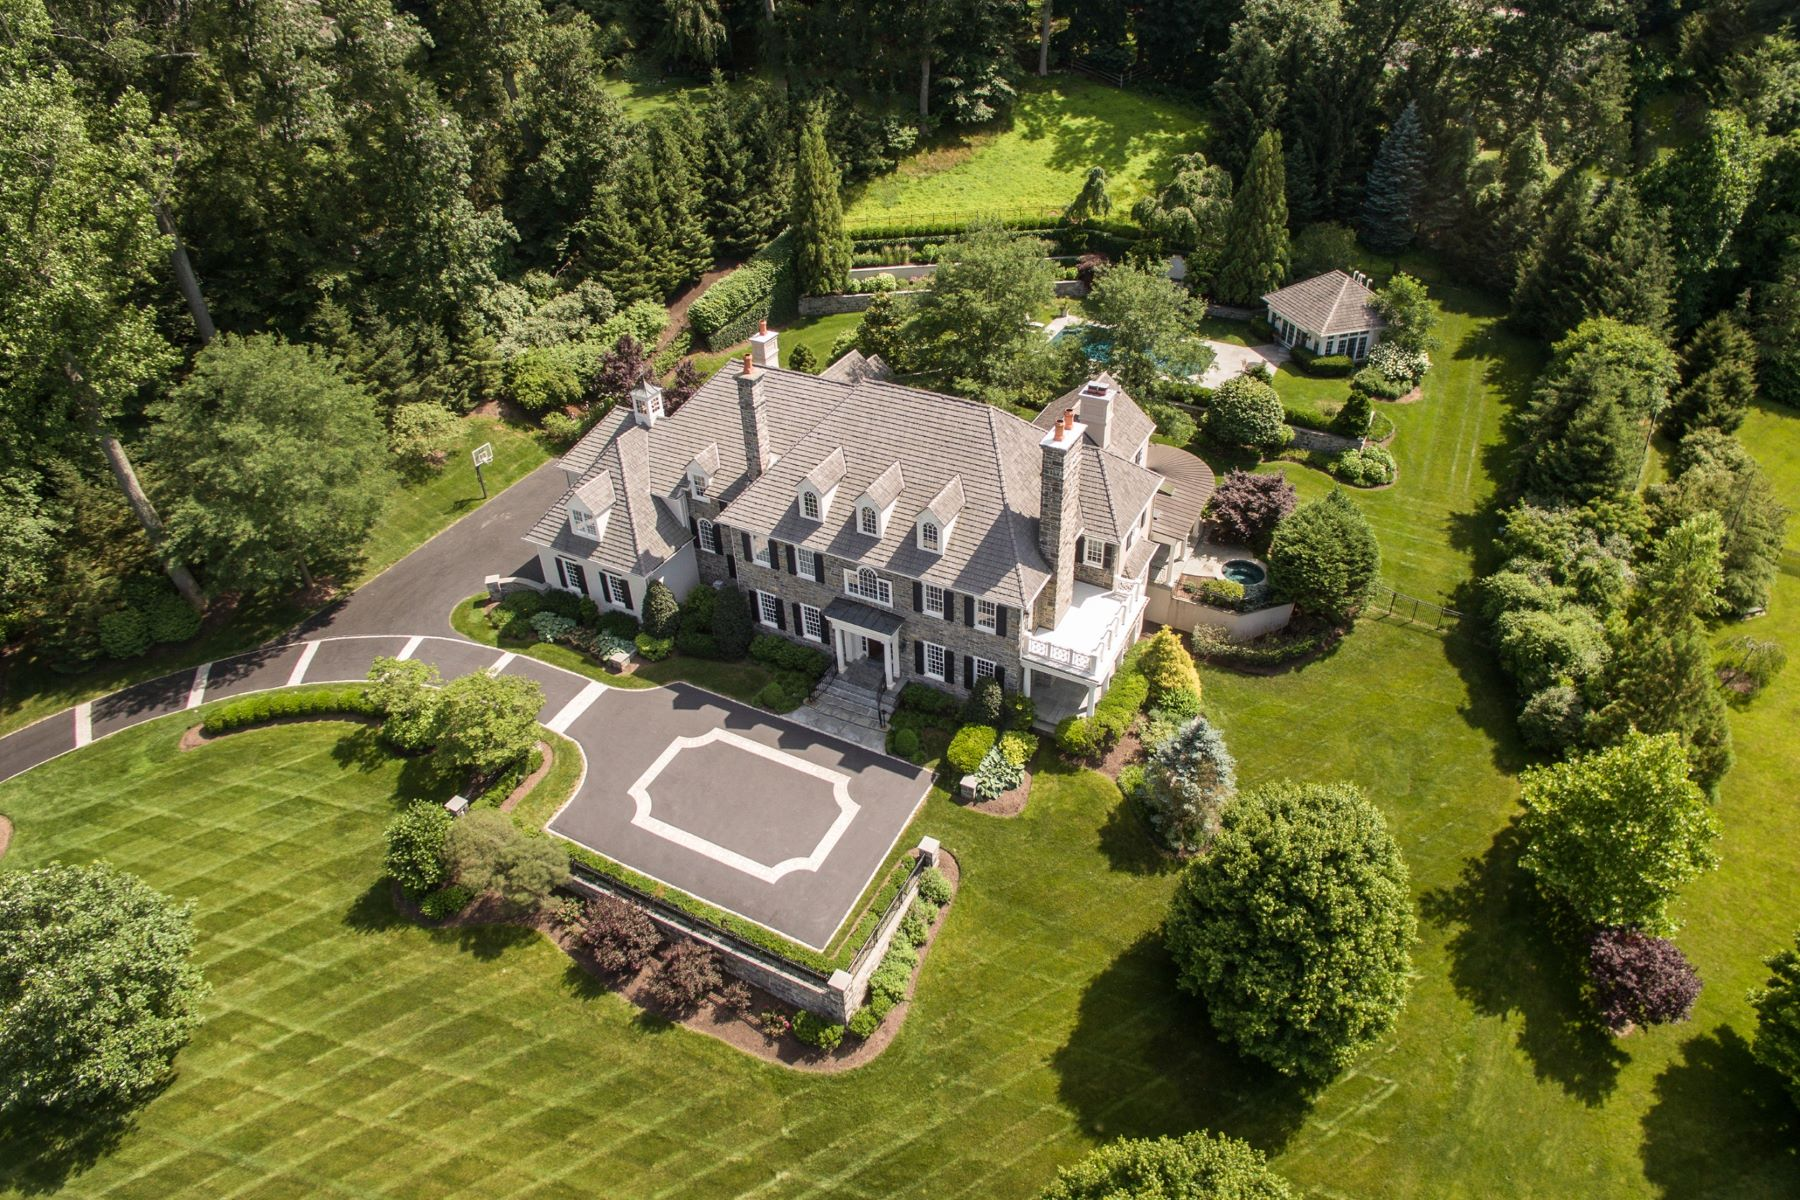 Single Family Home for Sale at Exceptional Residence 103 MILL VIEW LN Newtown Square, 19073 United States